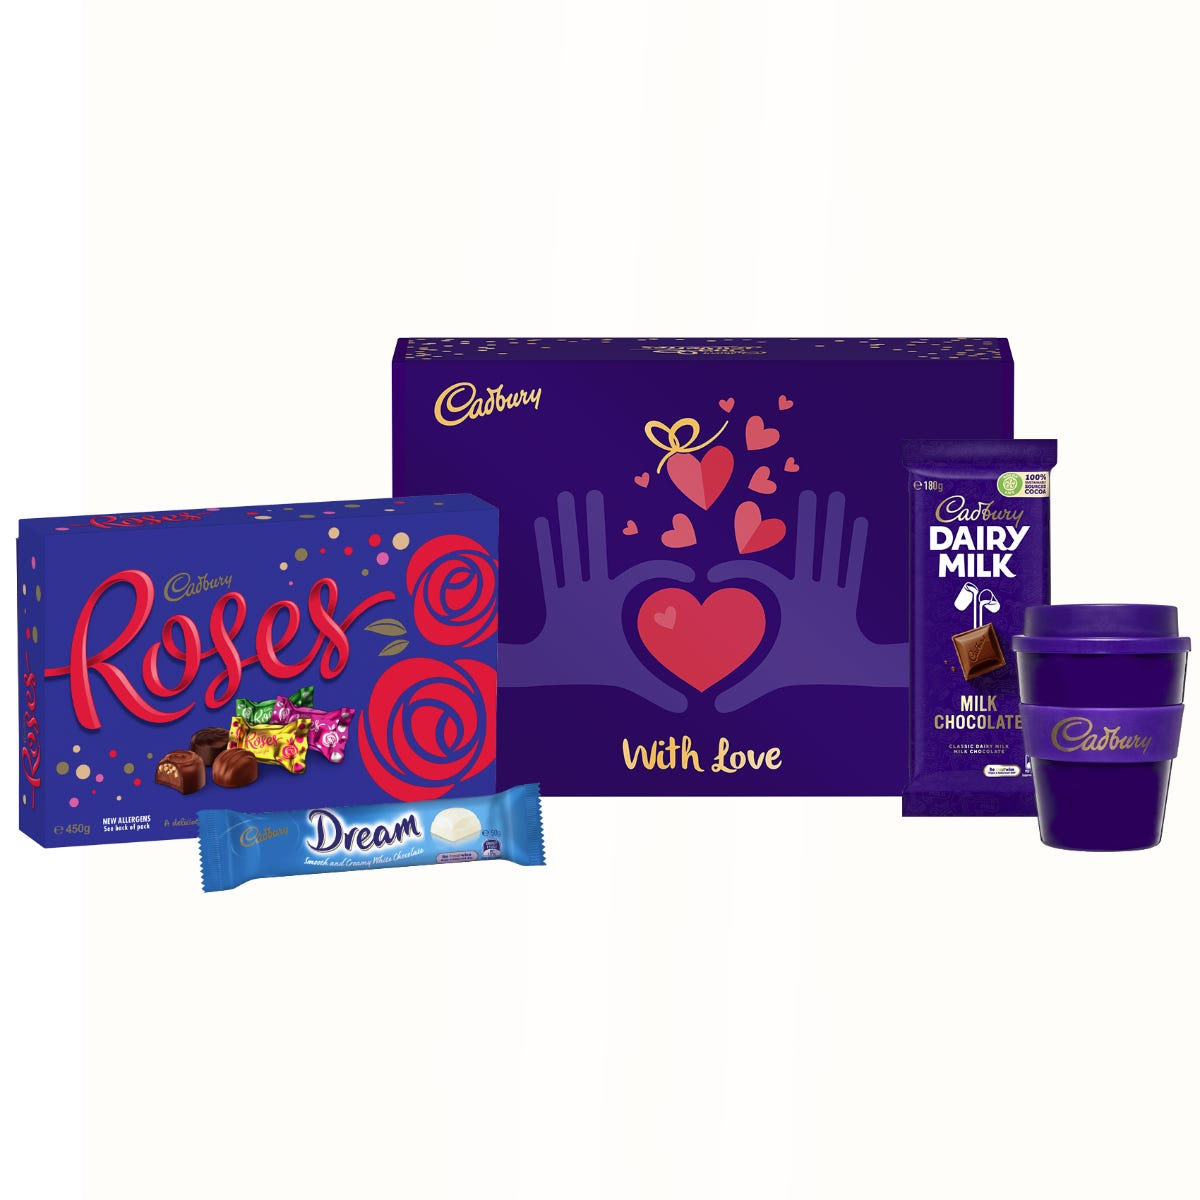 Cadbury Roses gift pack - With Love